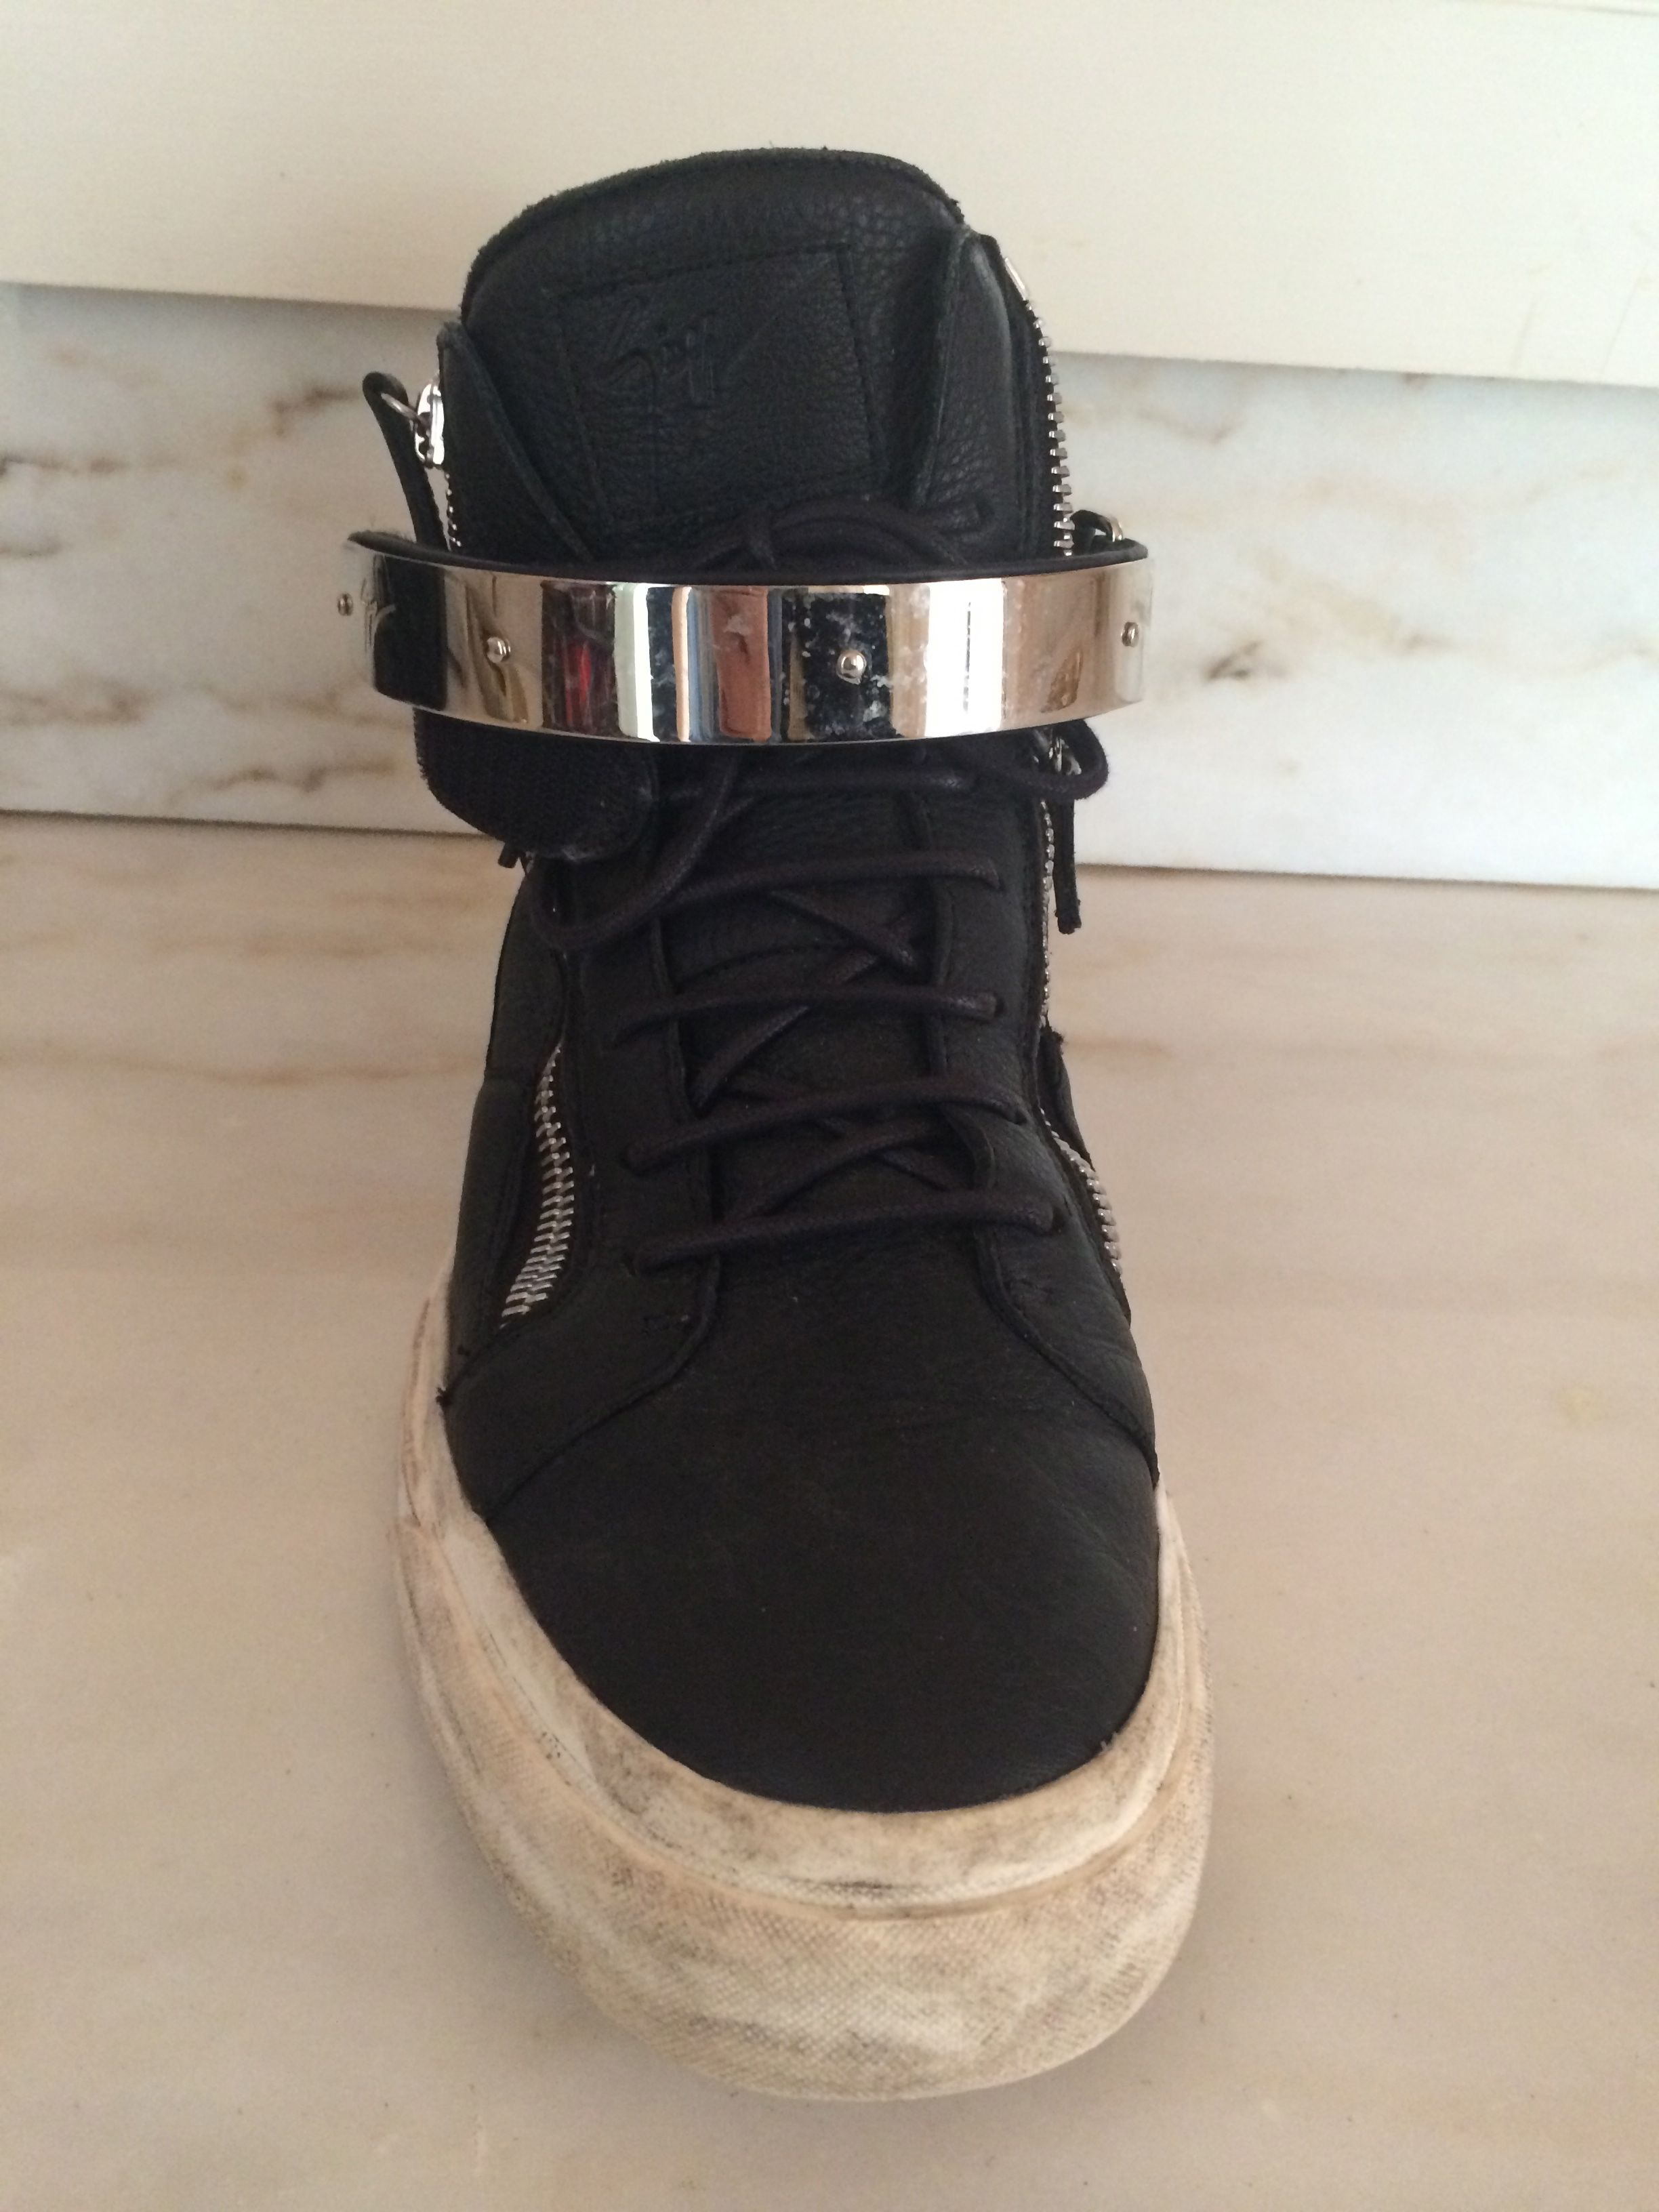 BLOG-BLACK SNEAKER W:METAL